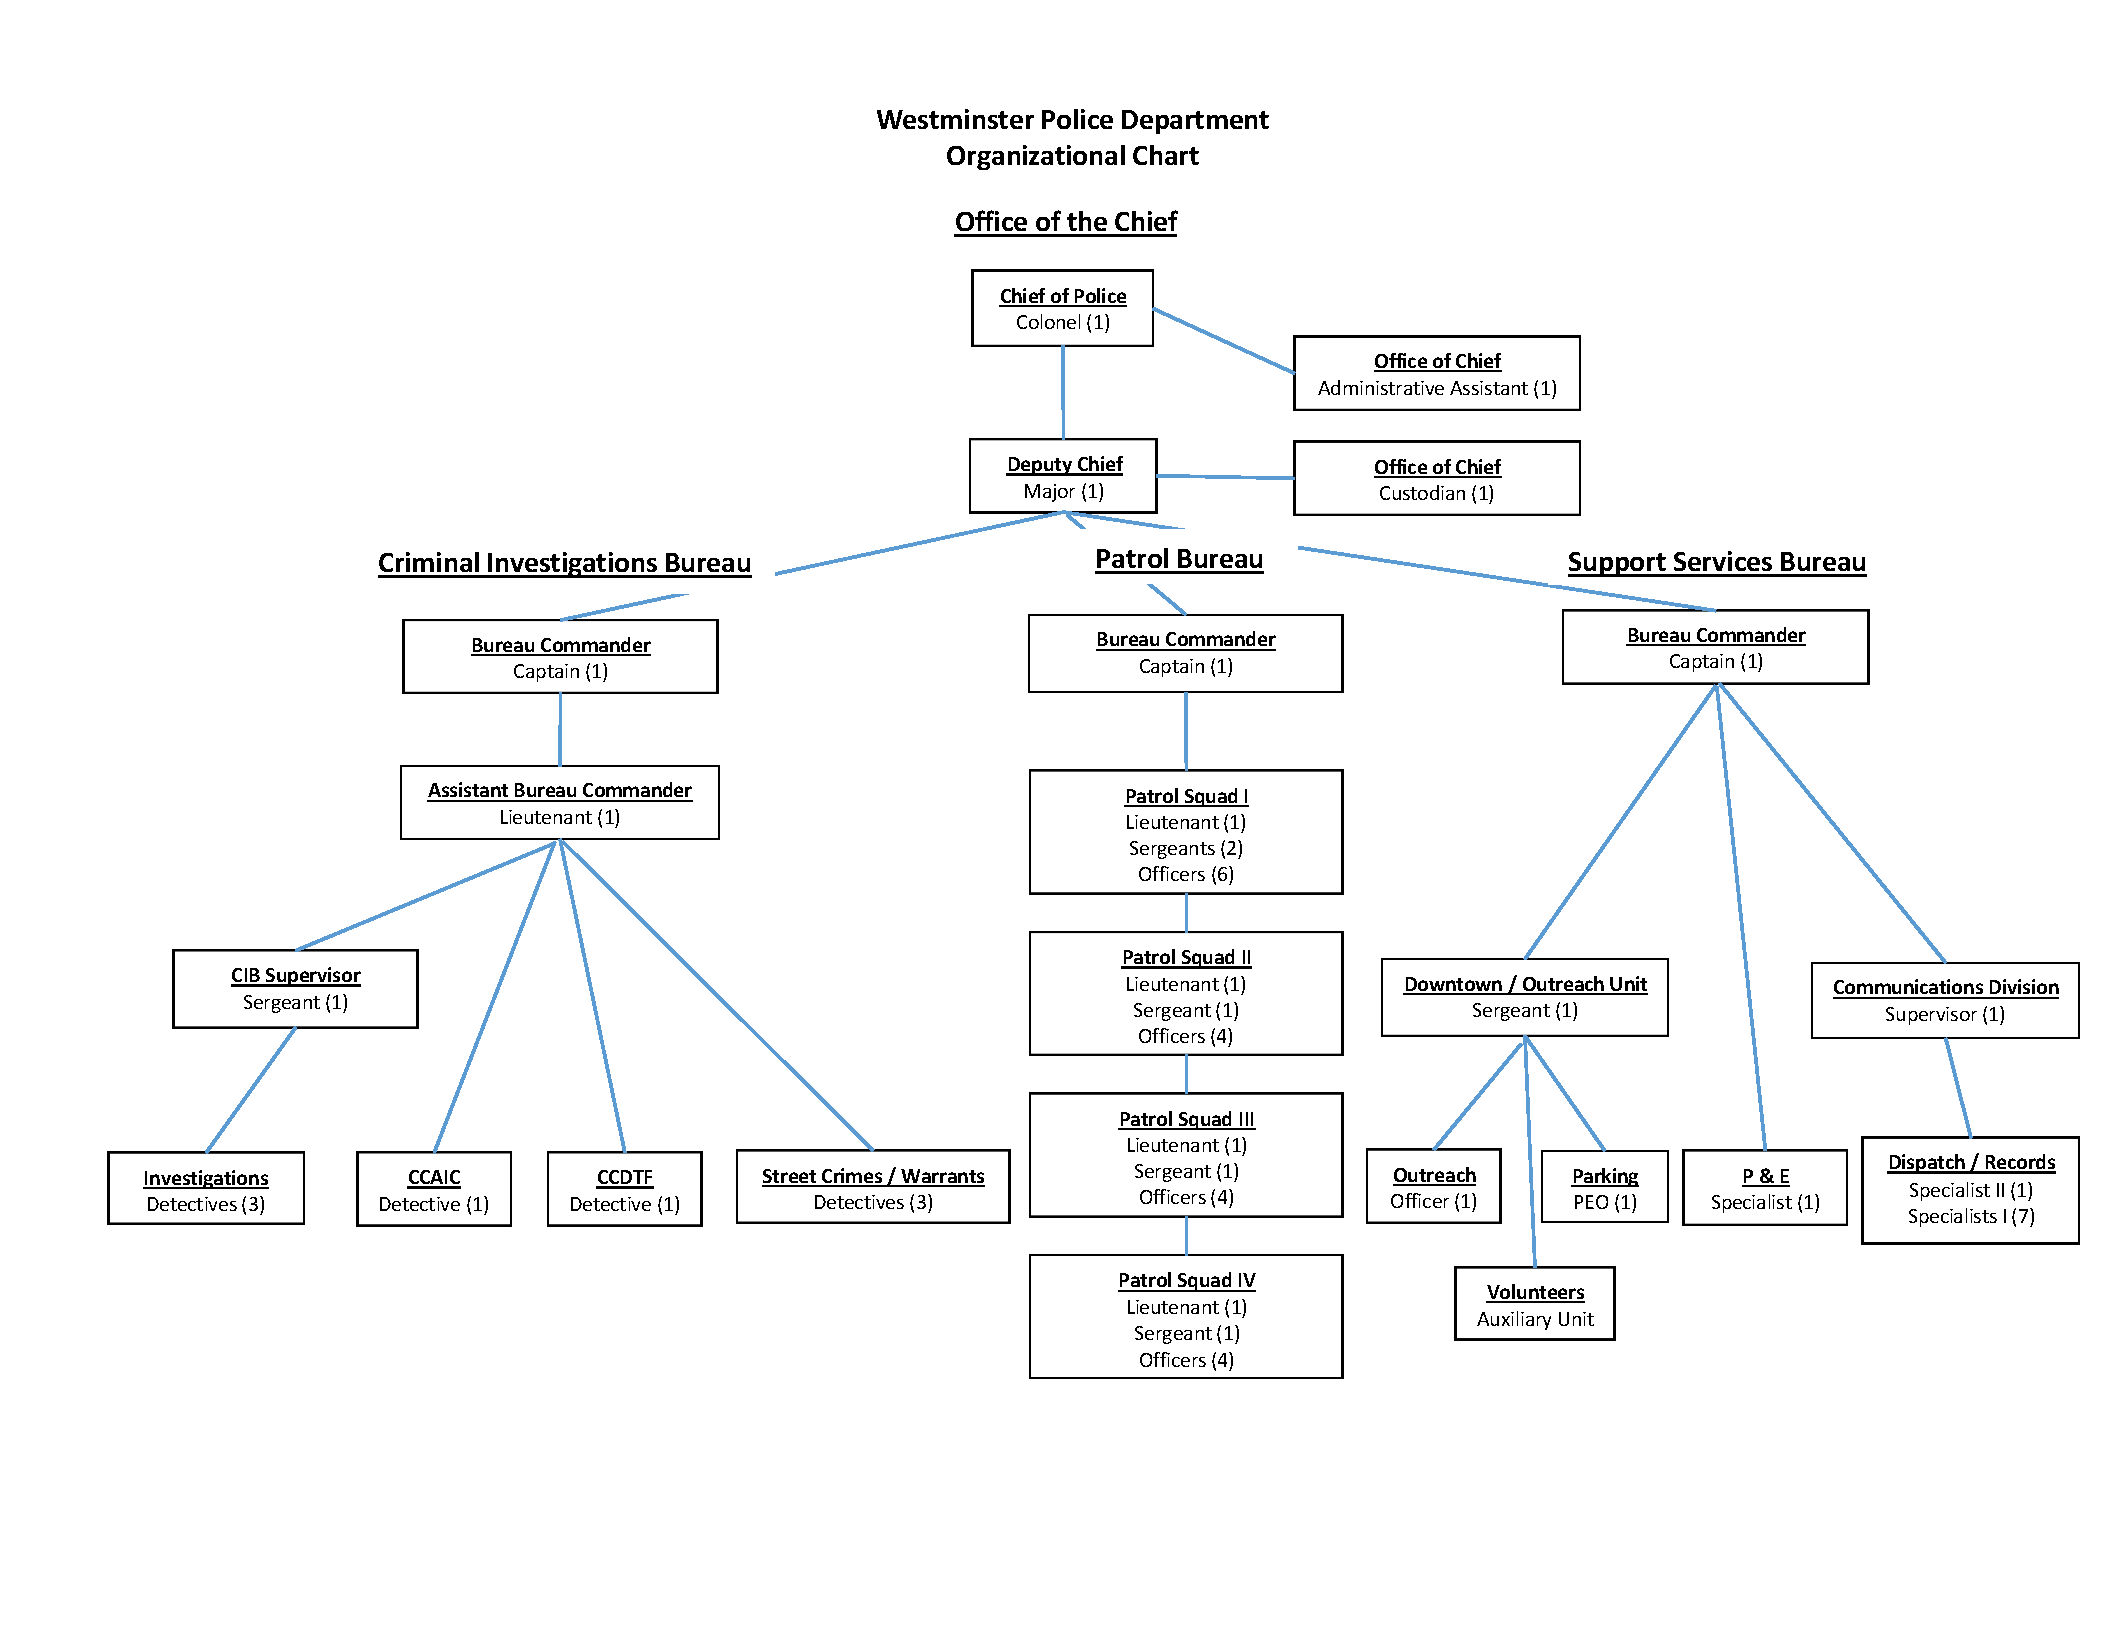 Westminster Police Department Organizational Chart